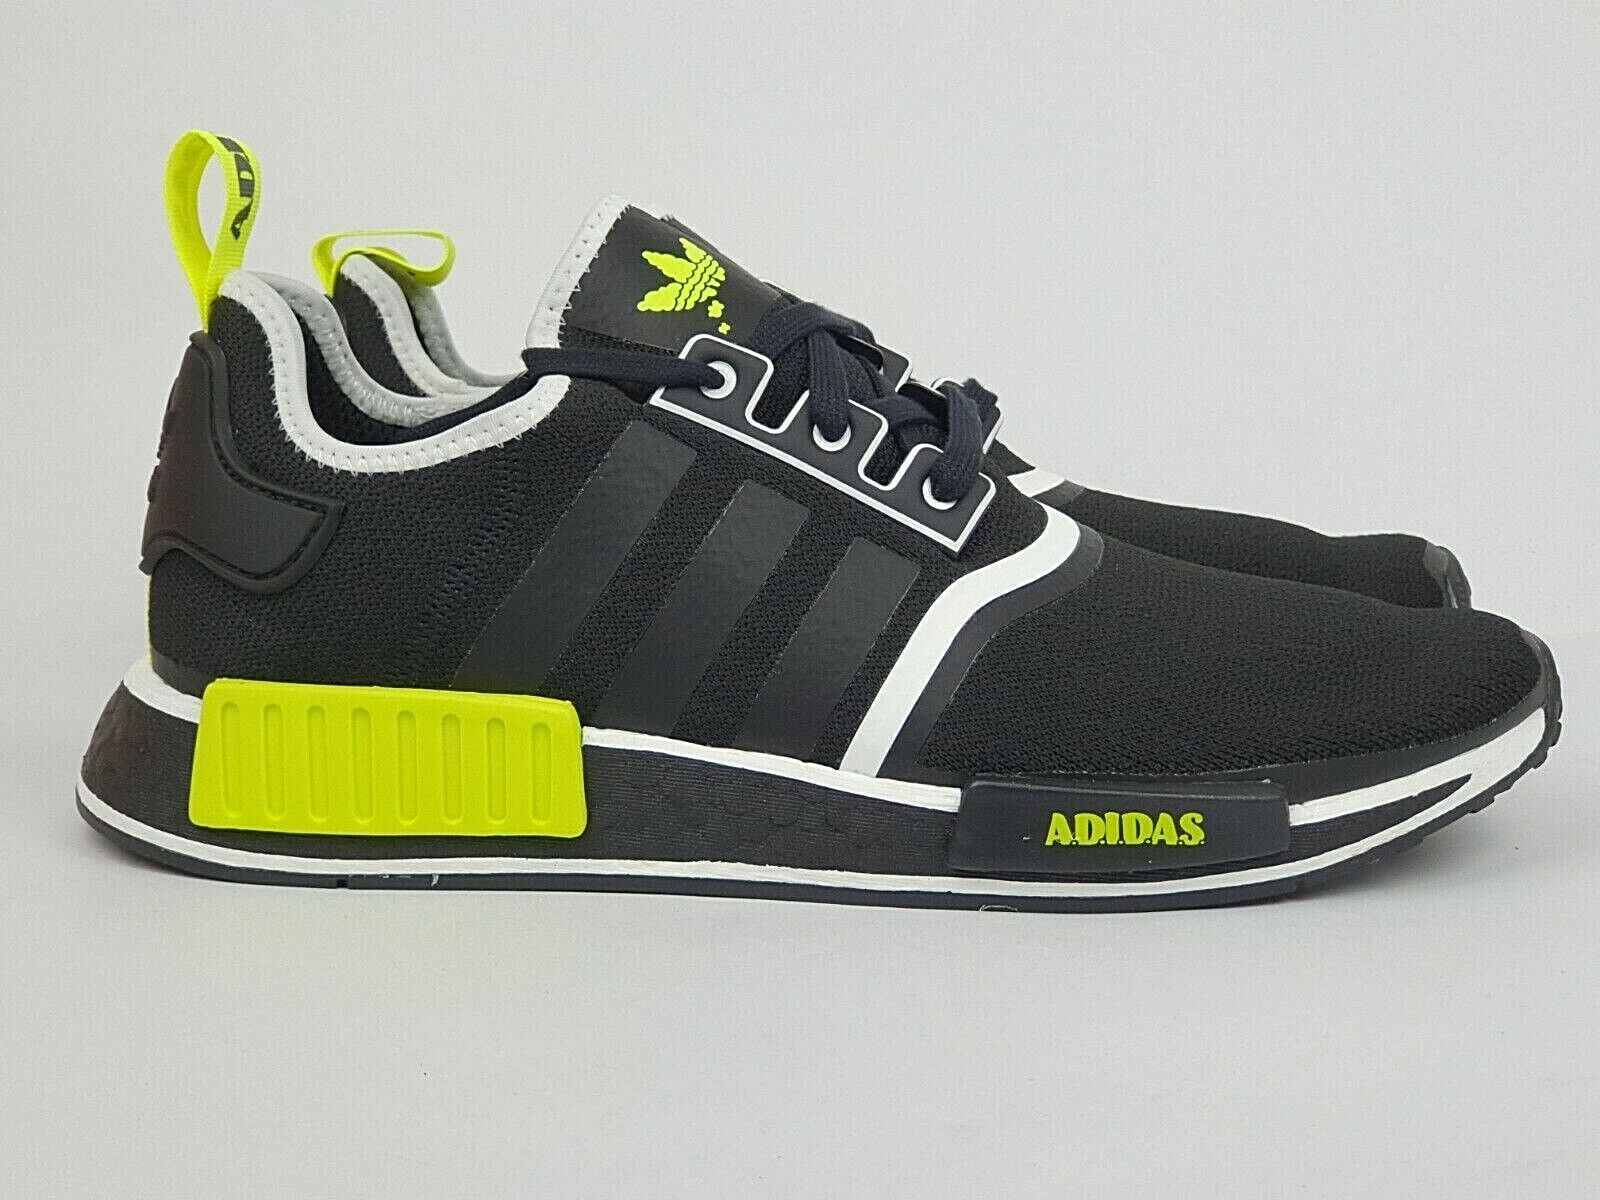 Adidas NMD R1 'Black Yellow White' New(US12) boost superstar air ultra max R2 og